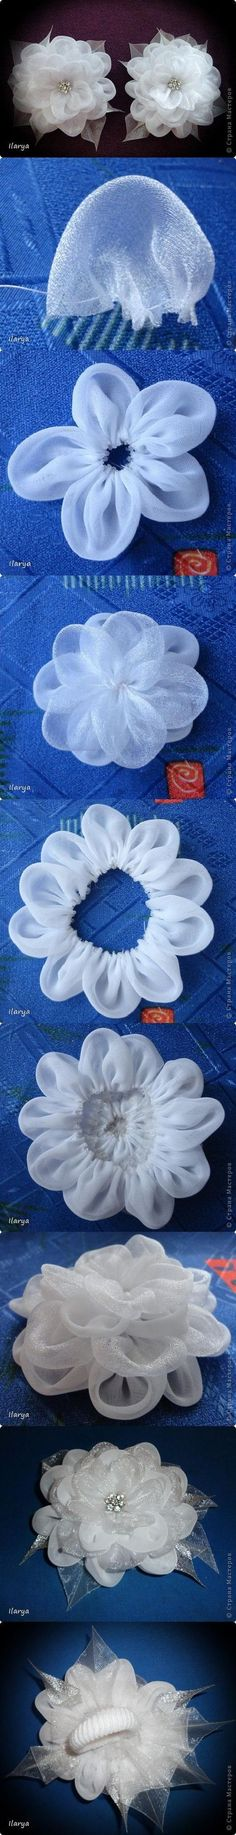 DIY Fabric Lust Flower DIY Projects